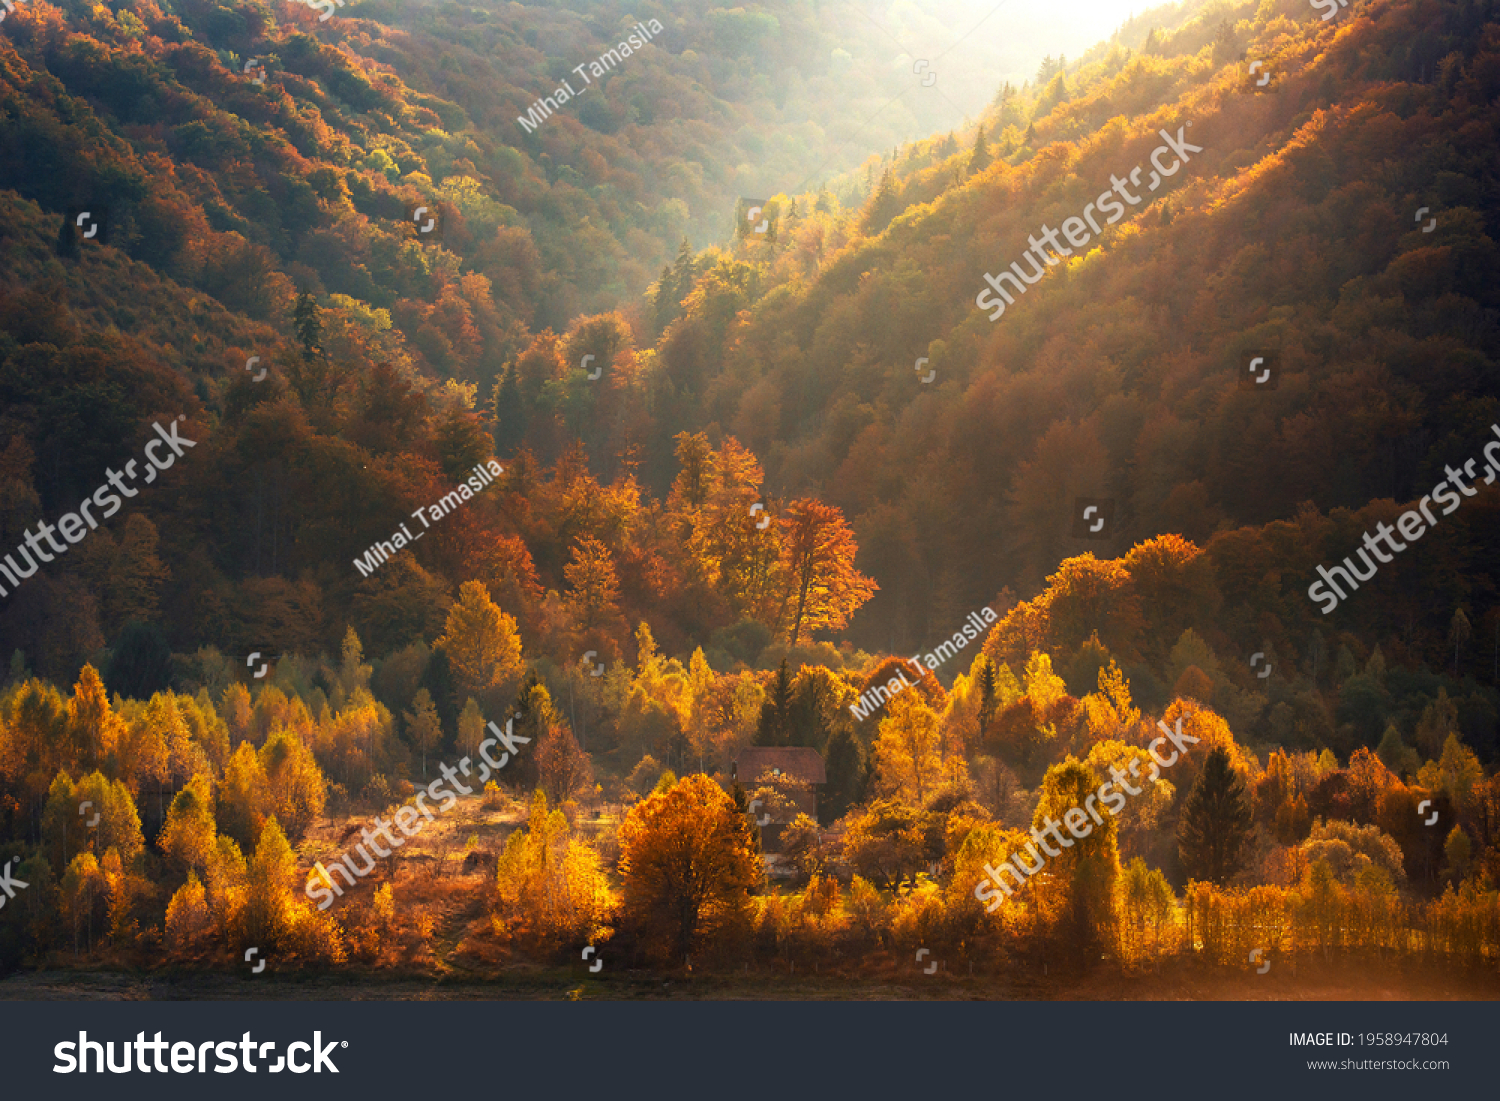 stock-photo-aerial-view-of-forest-at-sun